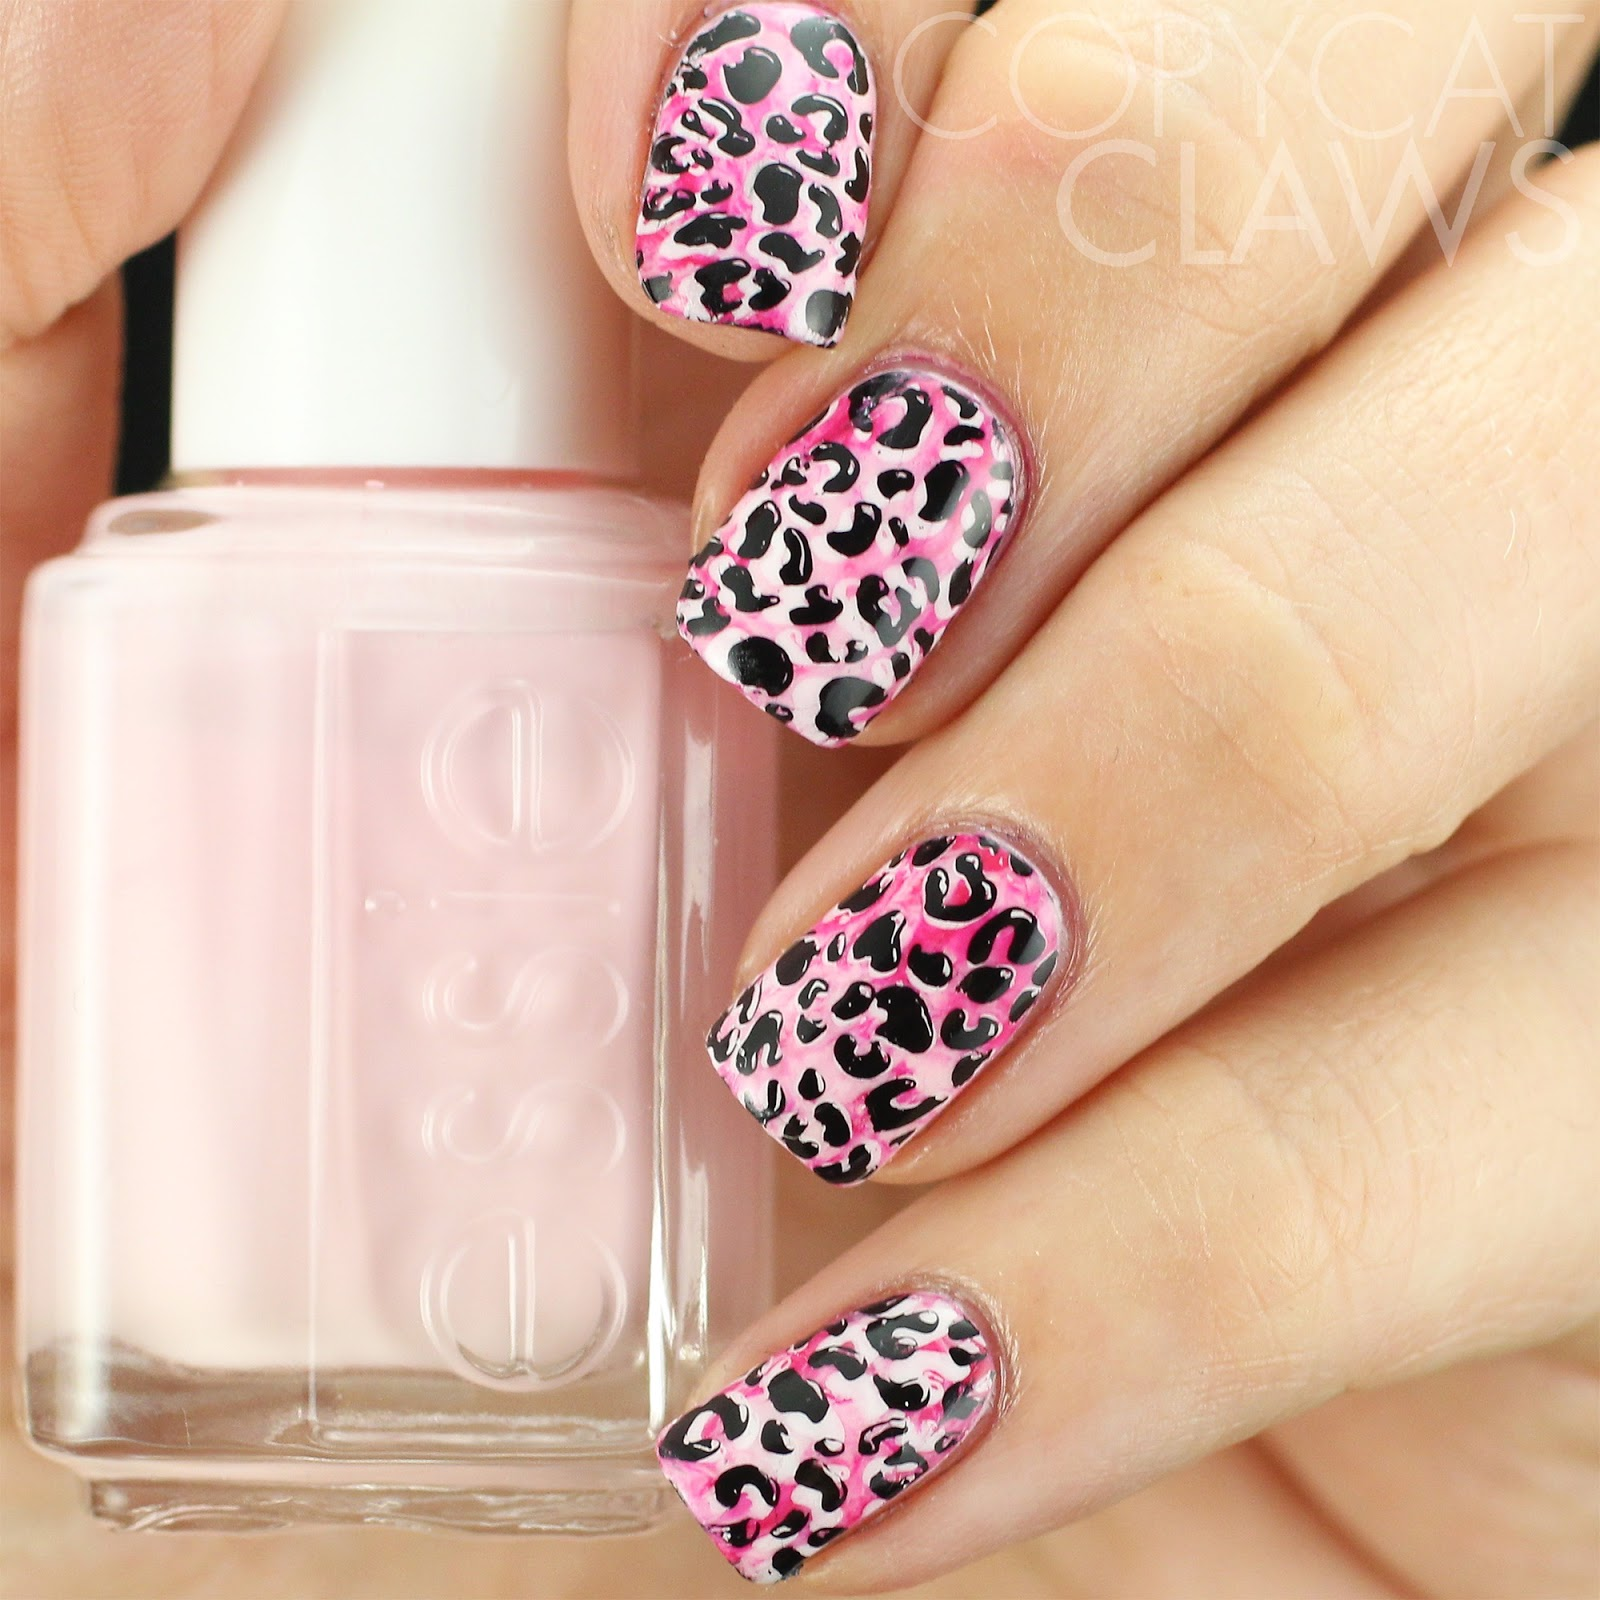 Copycat Claws: It Girl Nail Art Review